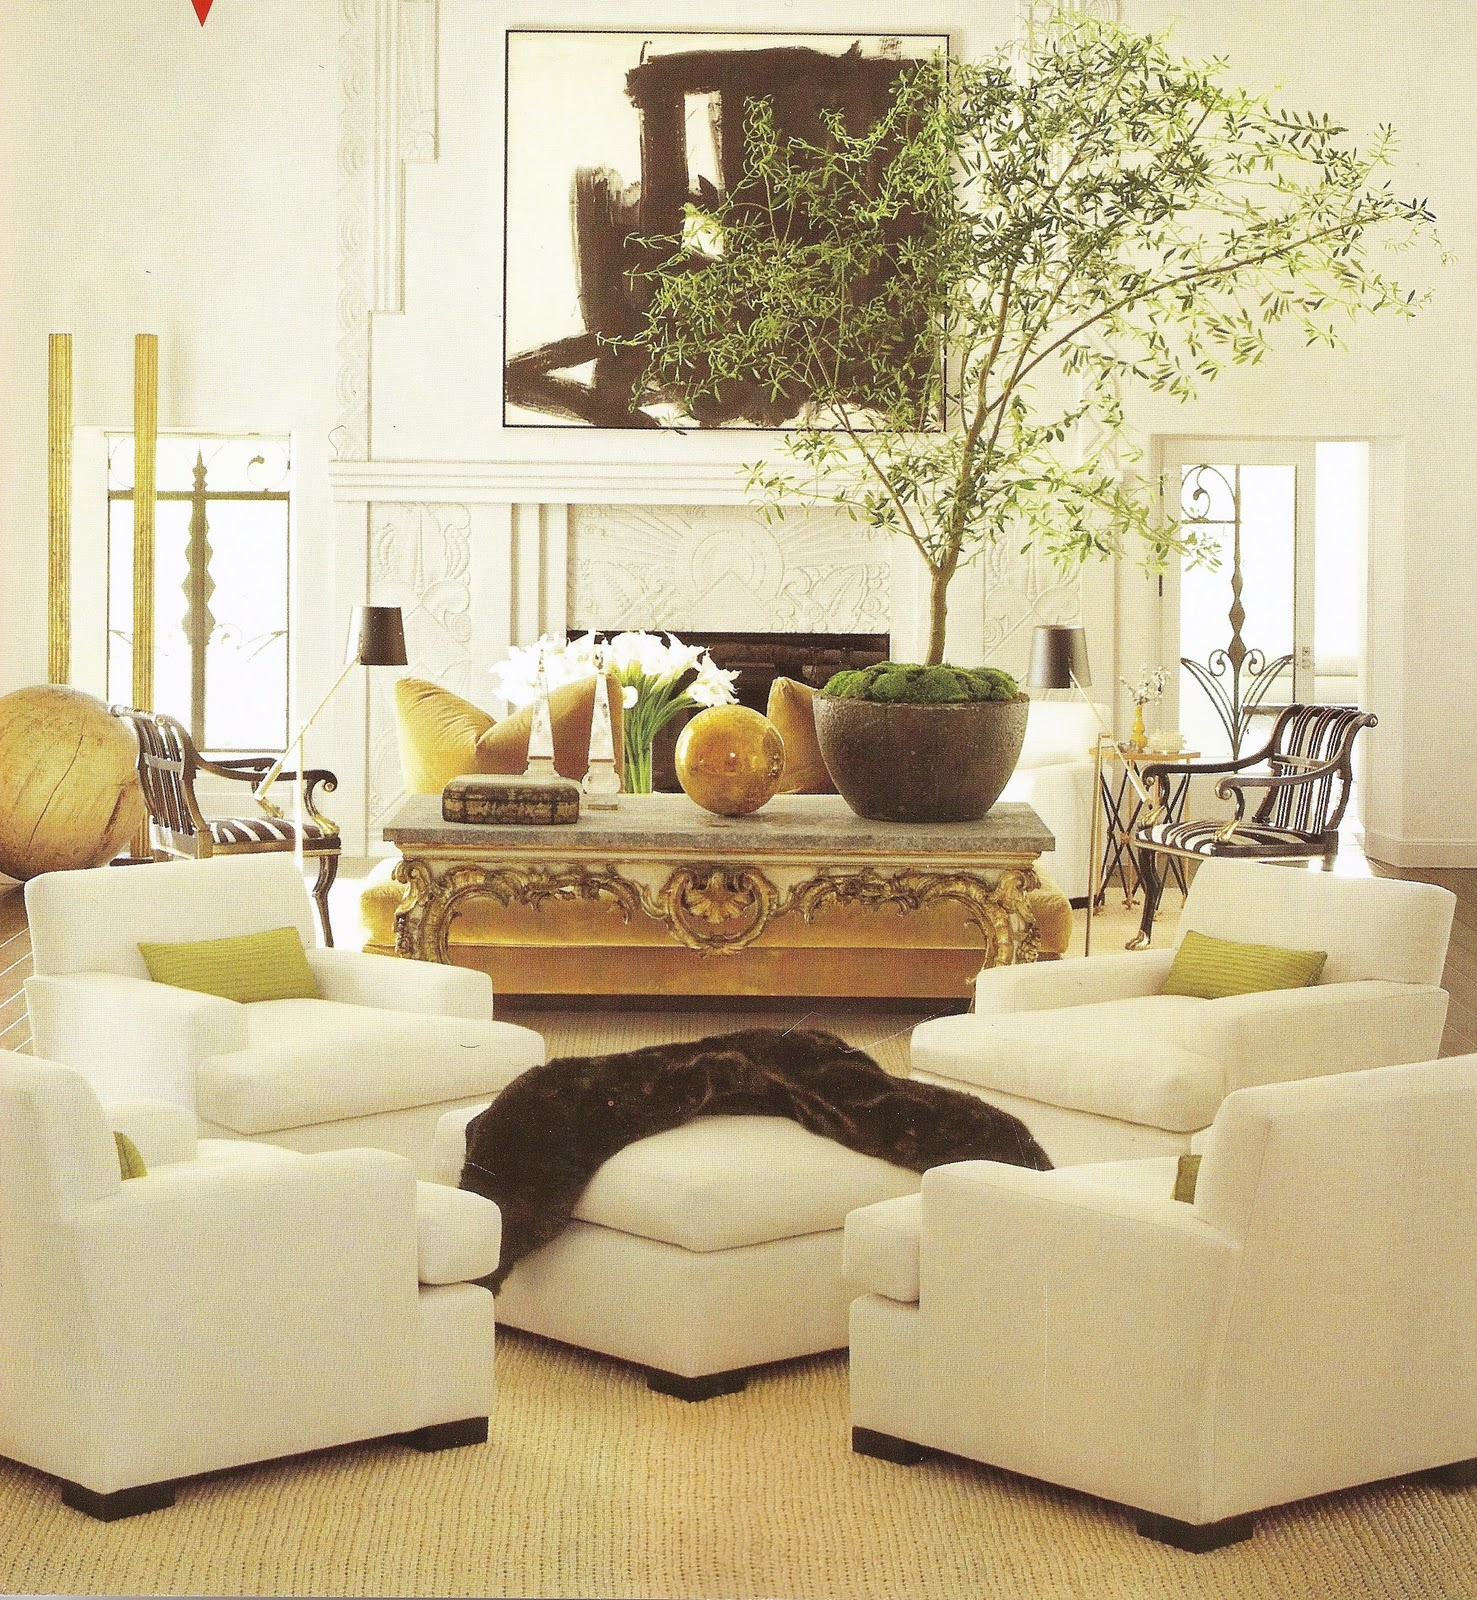 Top 4 Comfortable Chairs For Living Room: Acanthus And Acorn: The Alternative Room